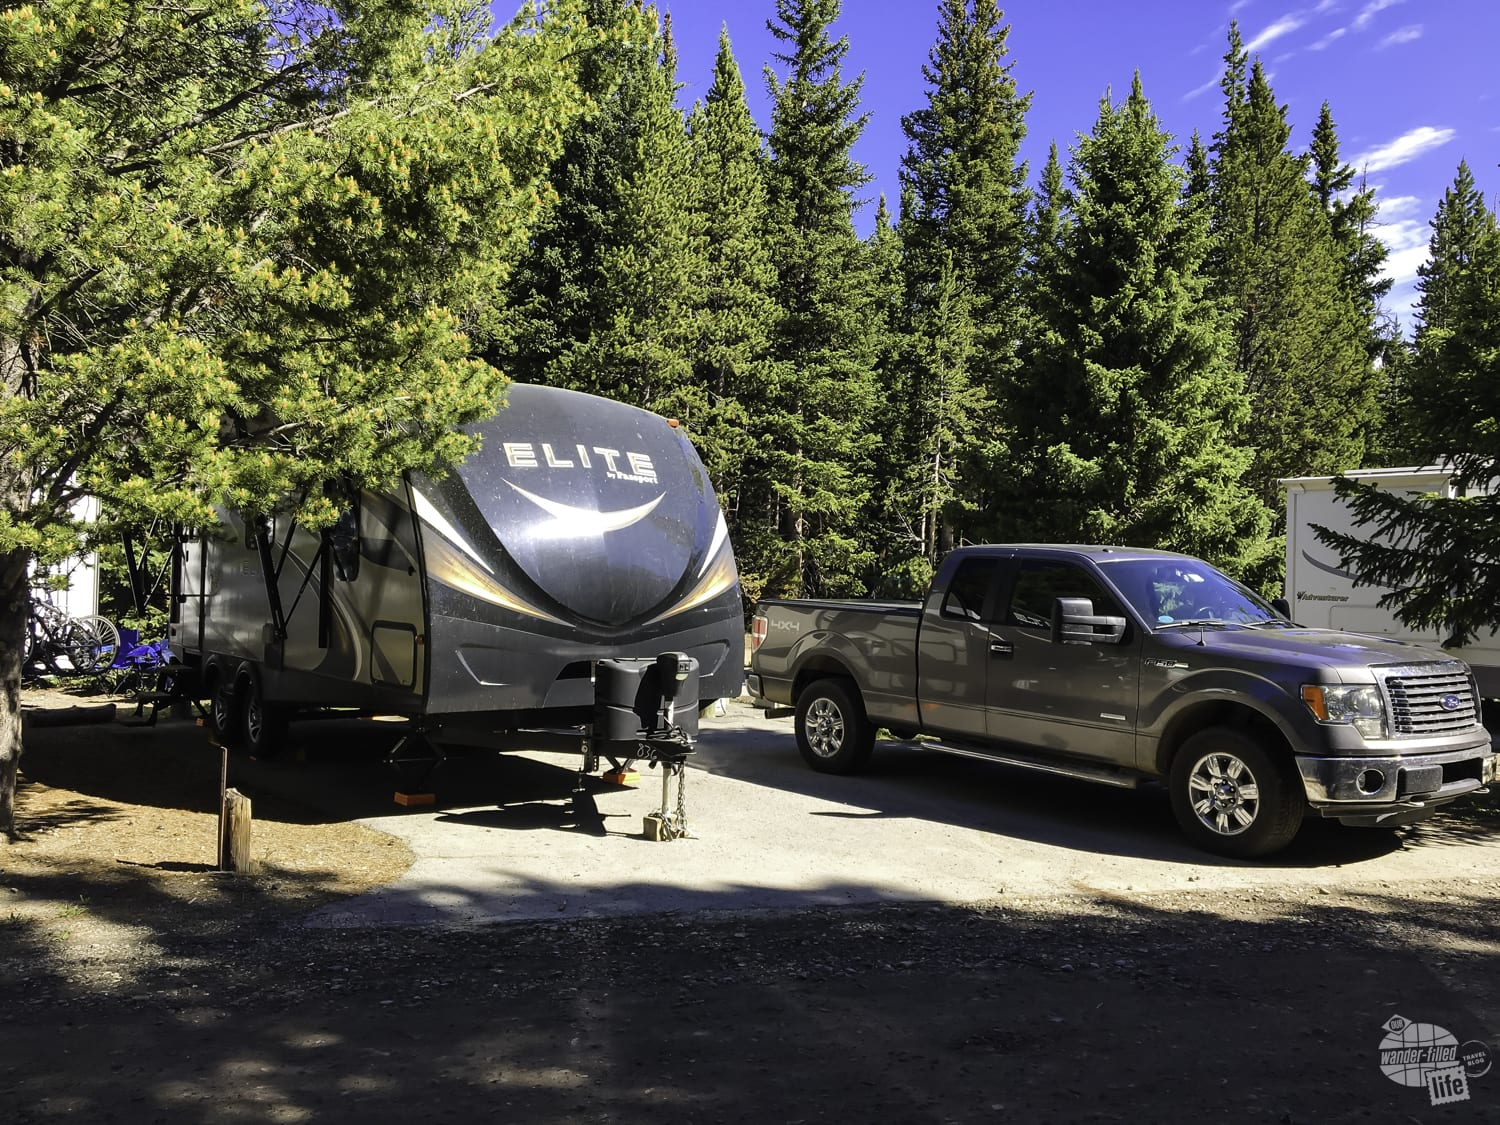 Fishing Bridge is the only campground with hookups at Yellowstone.